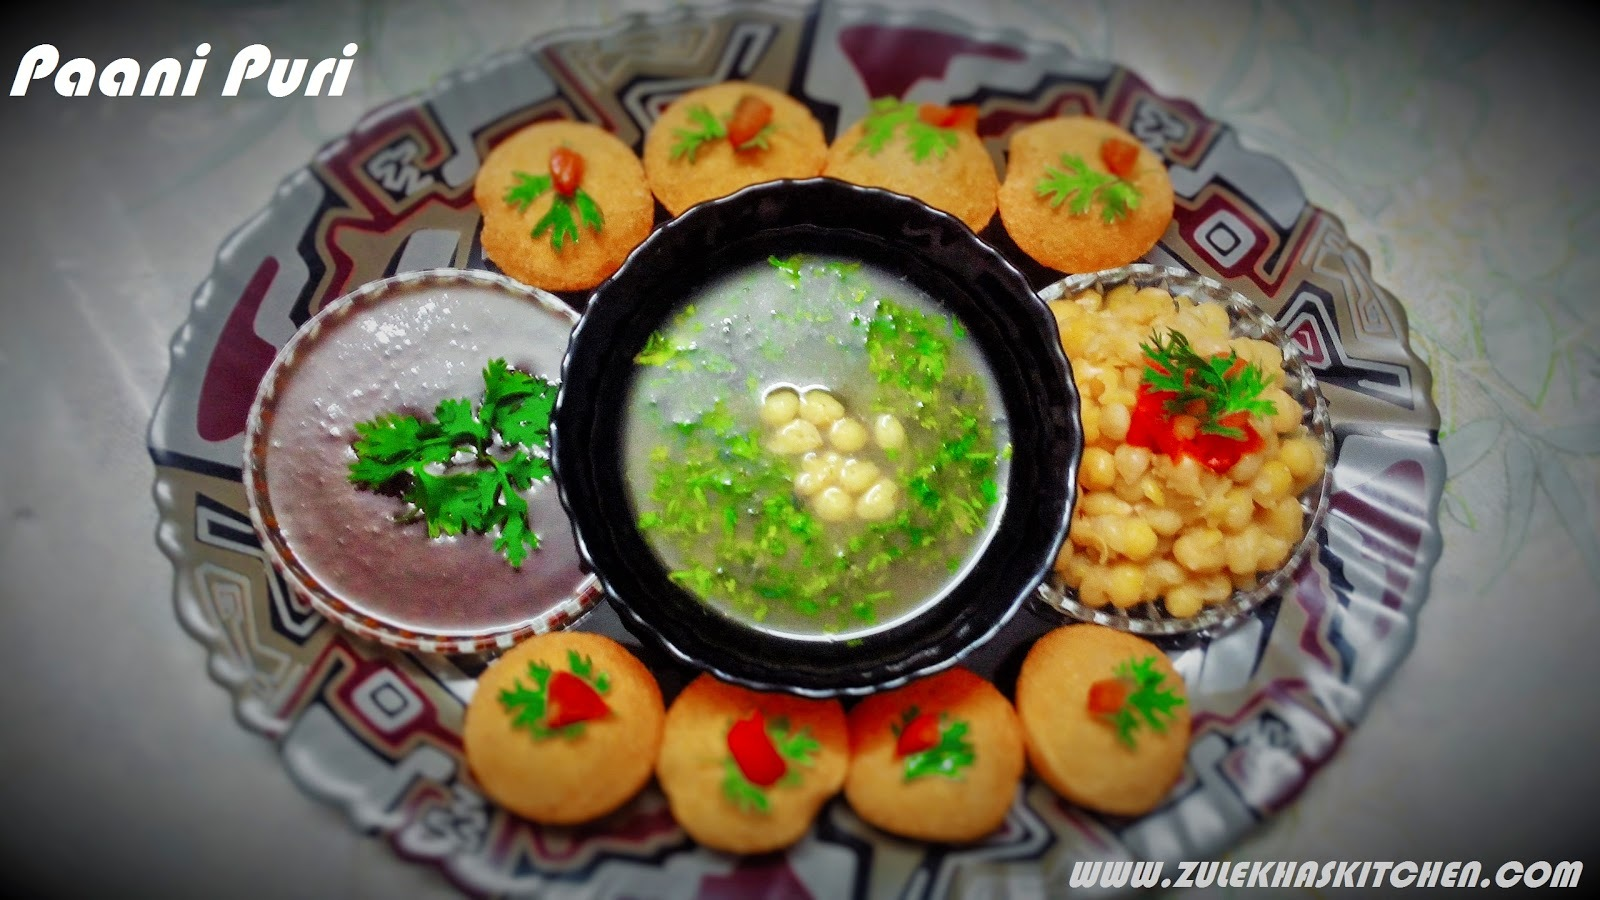 Recipe of Paani Puri